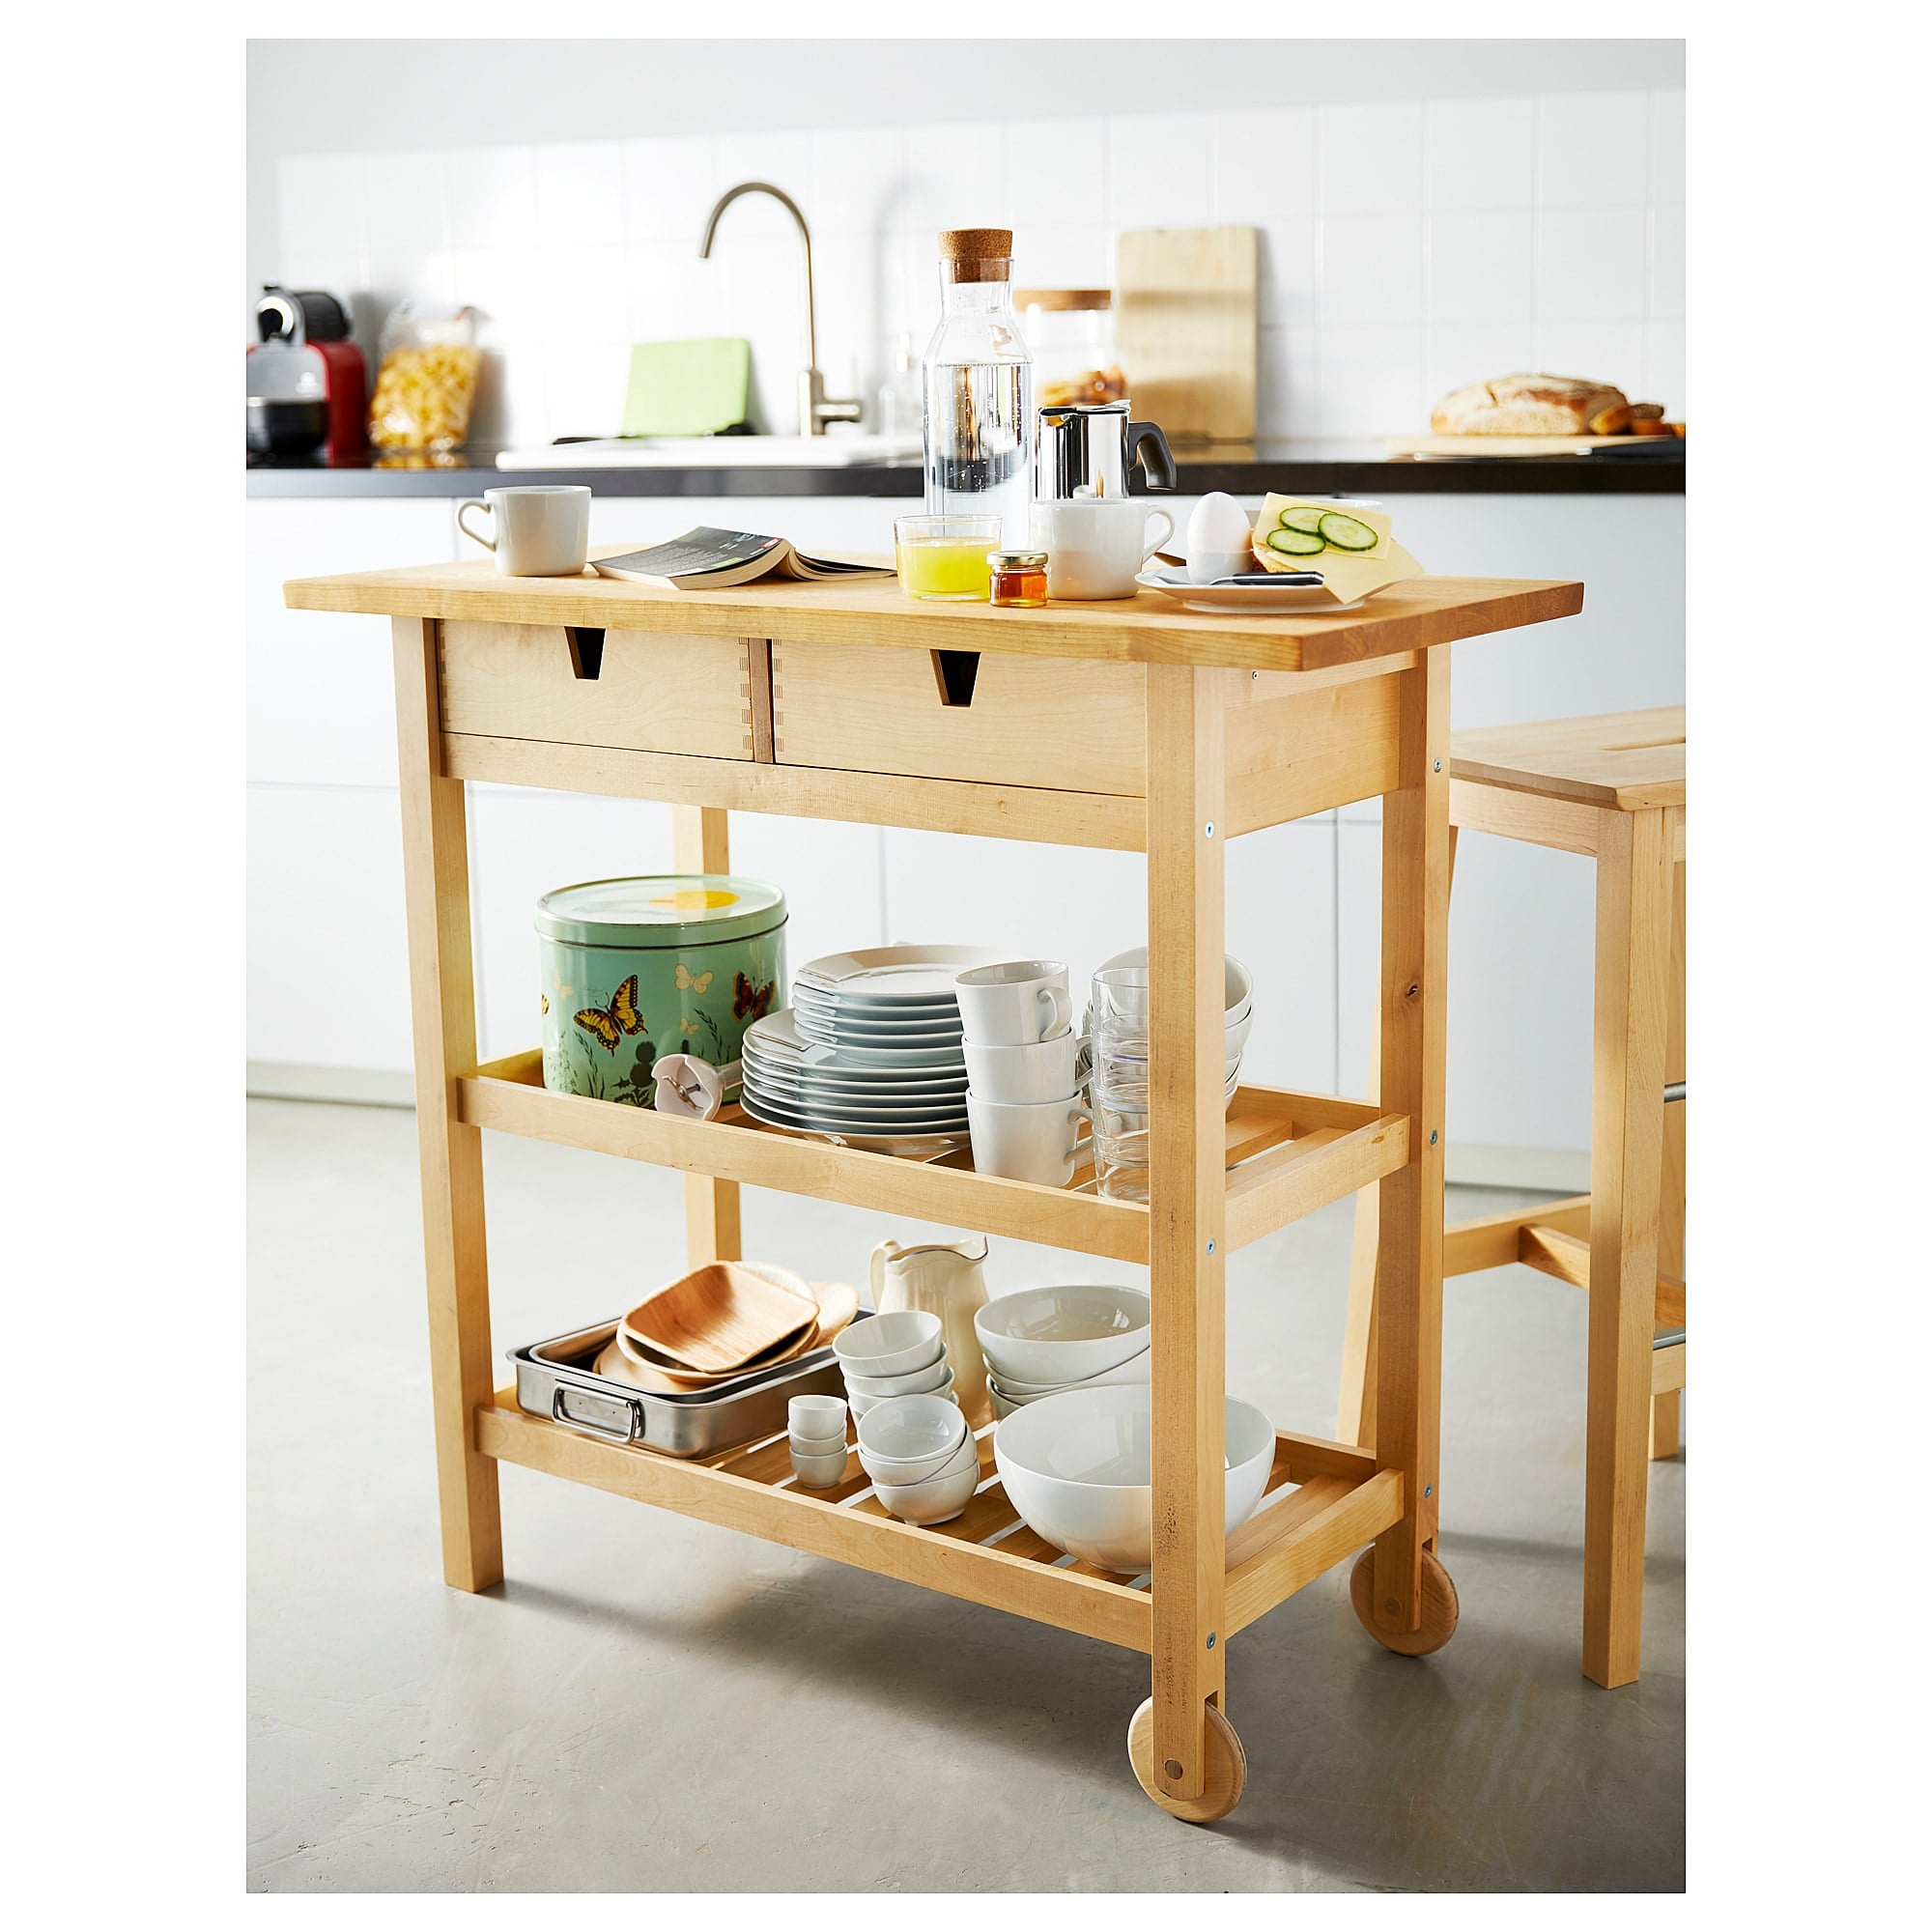 Picture of: Best Ikea Kitchen Furniture With Storage Popsugar Home